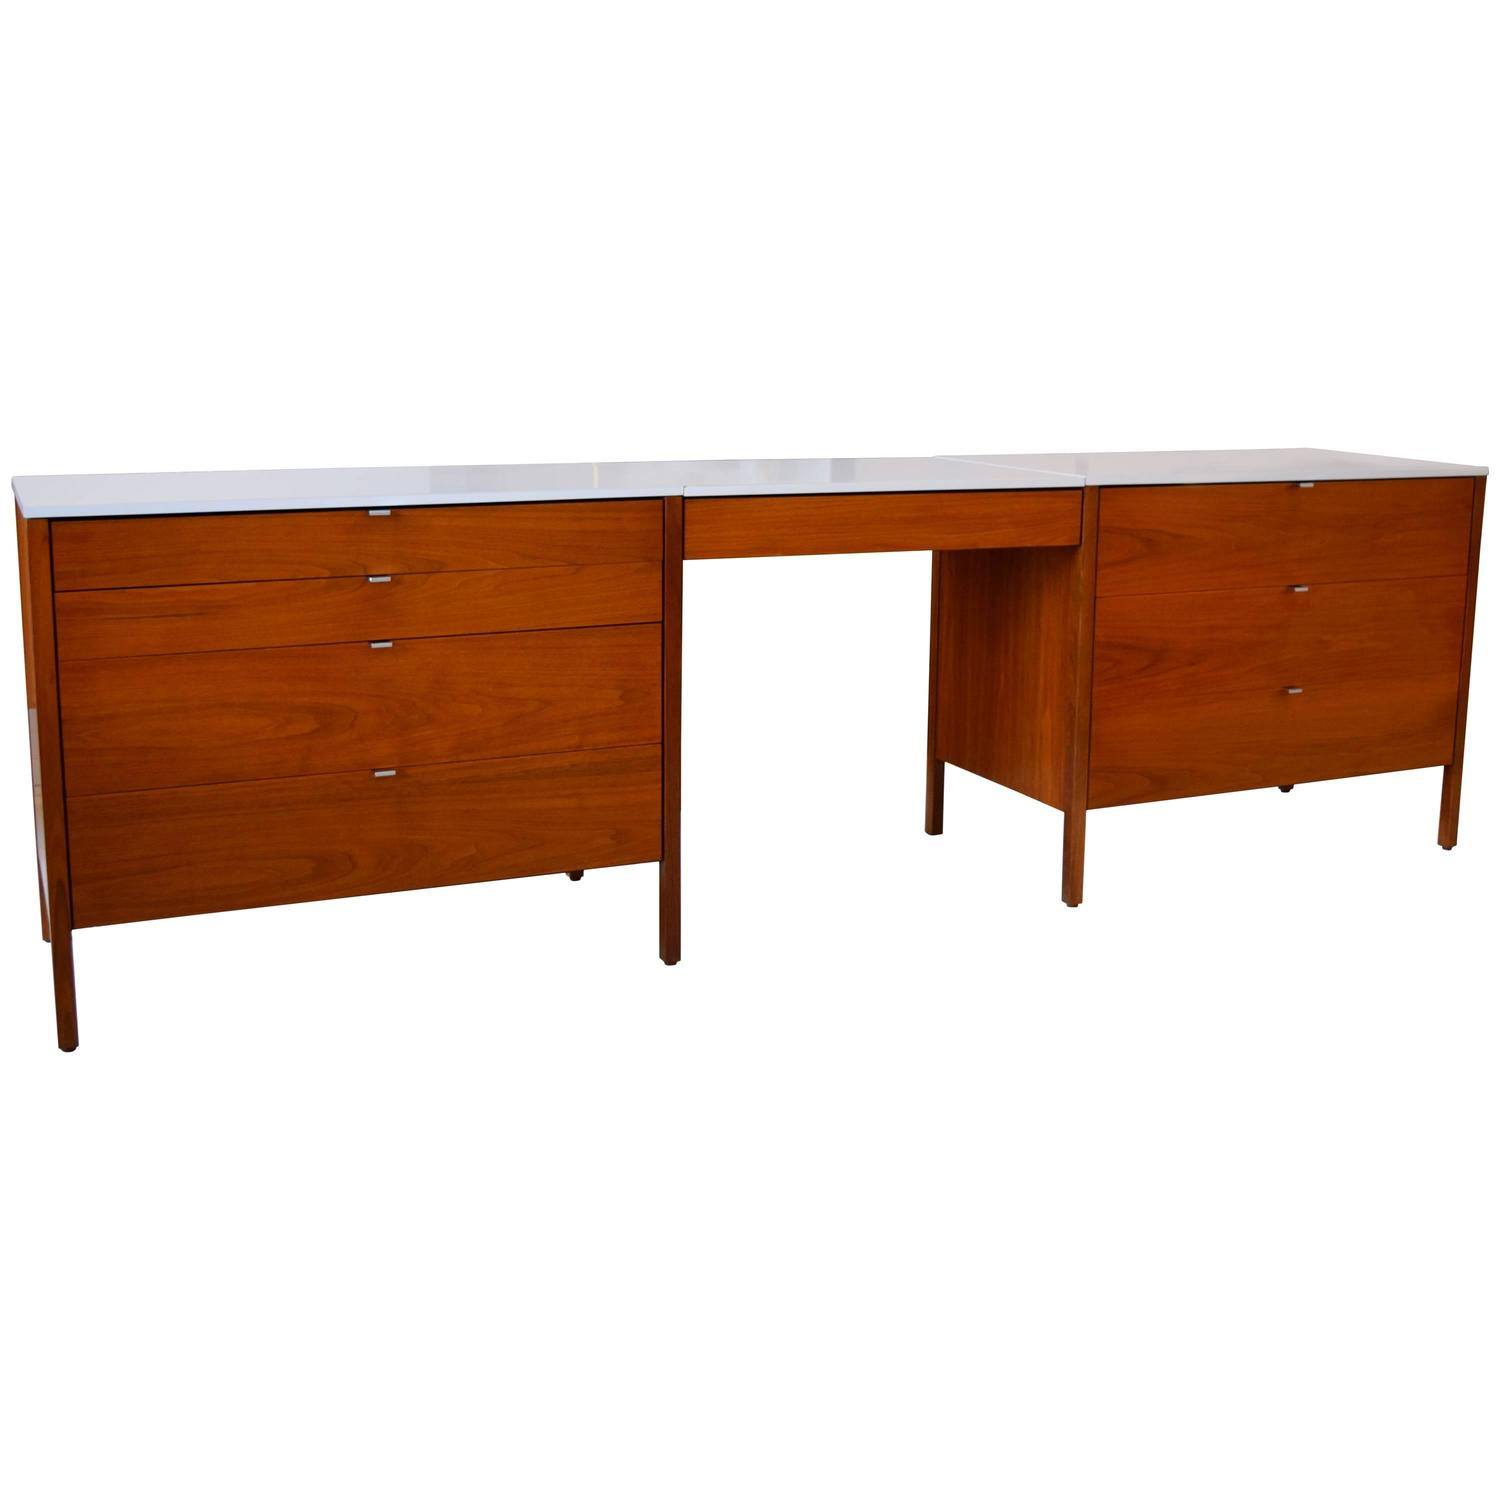 Florence knoll walnut dresser set with floating desk for Floating desk for sale